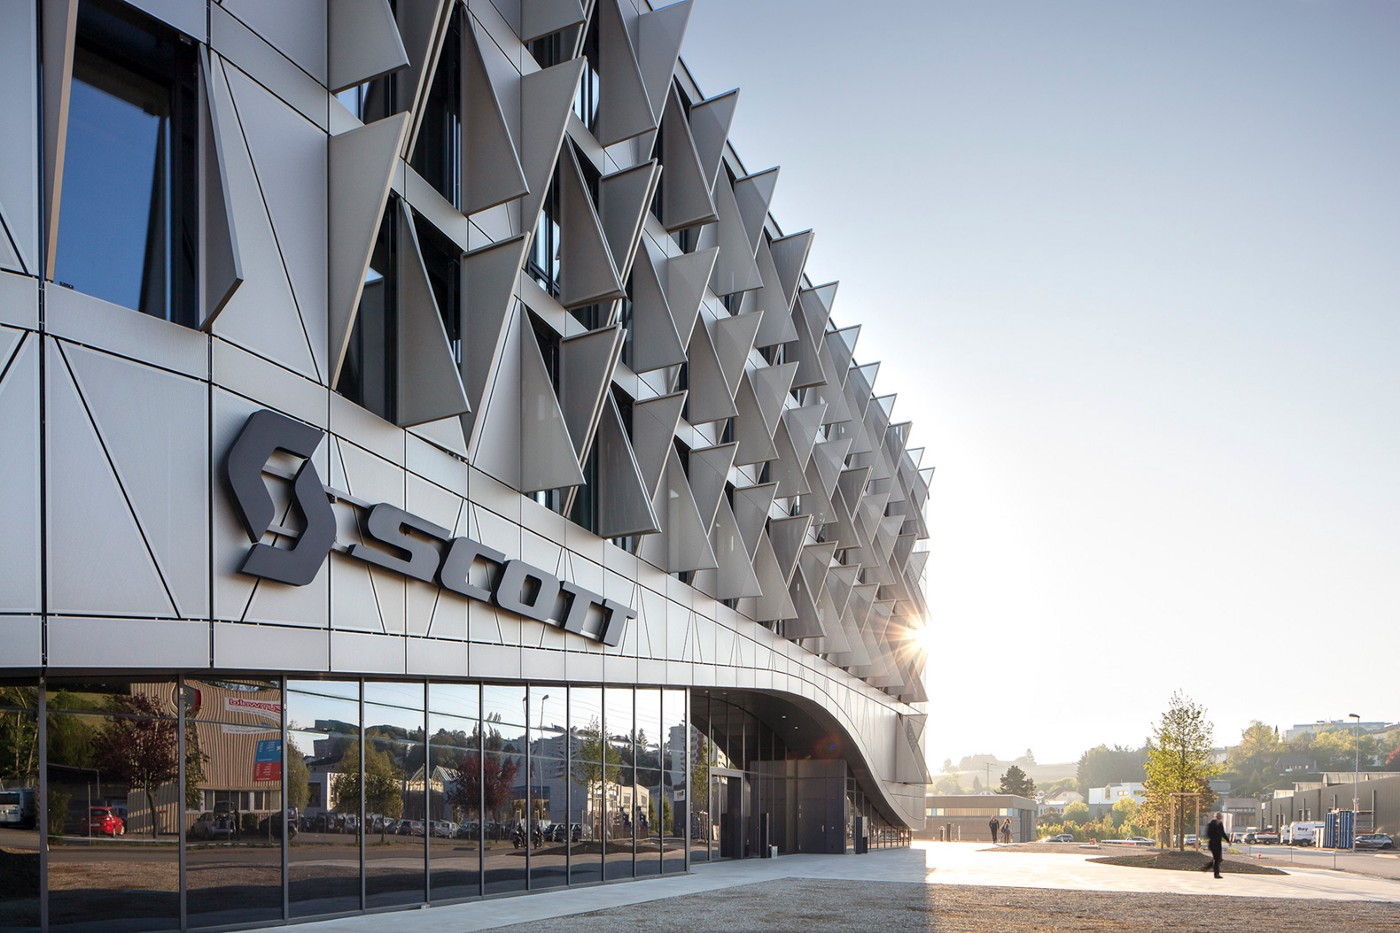 Scott Sports HQ building with metal solar shades on the exterior